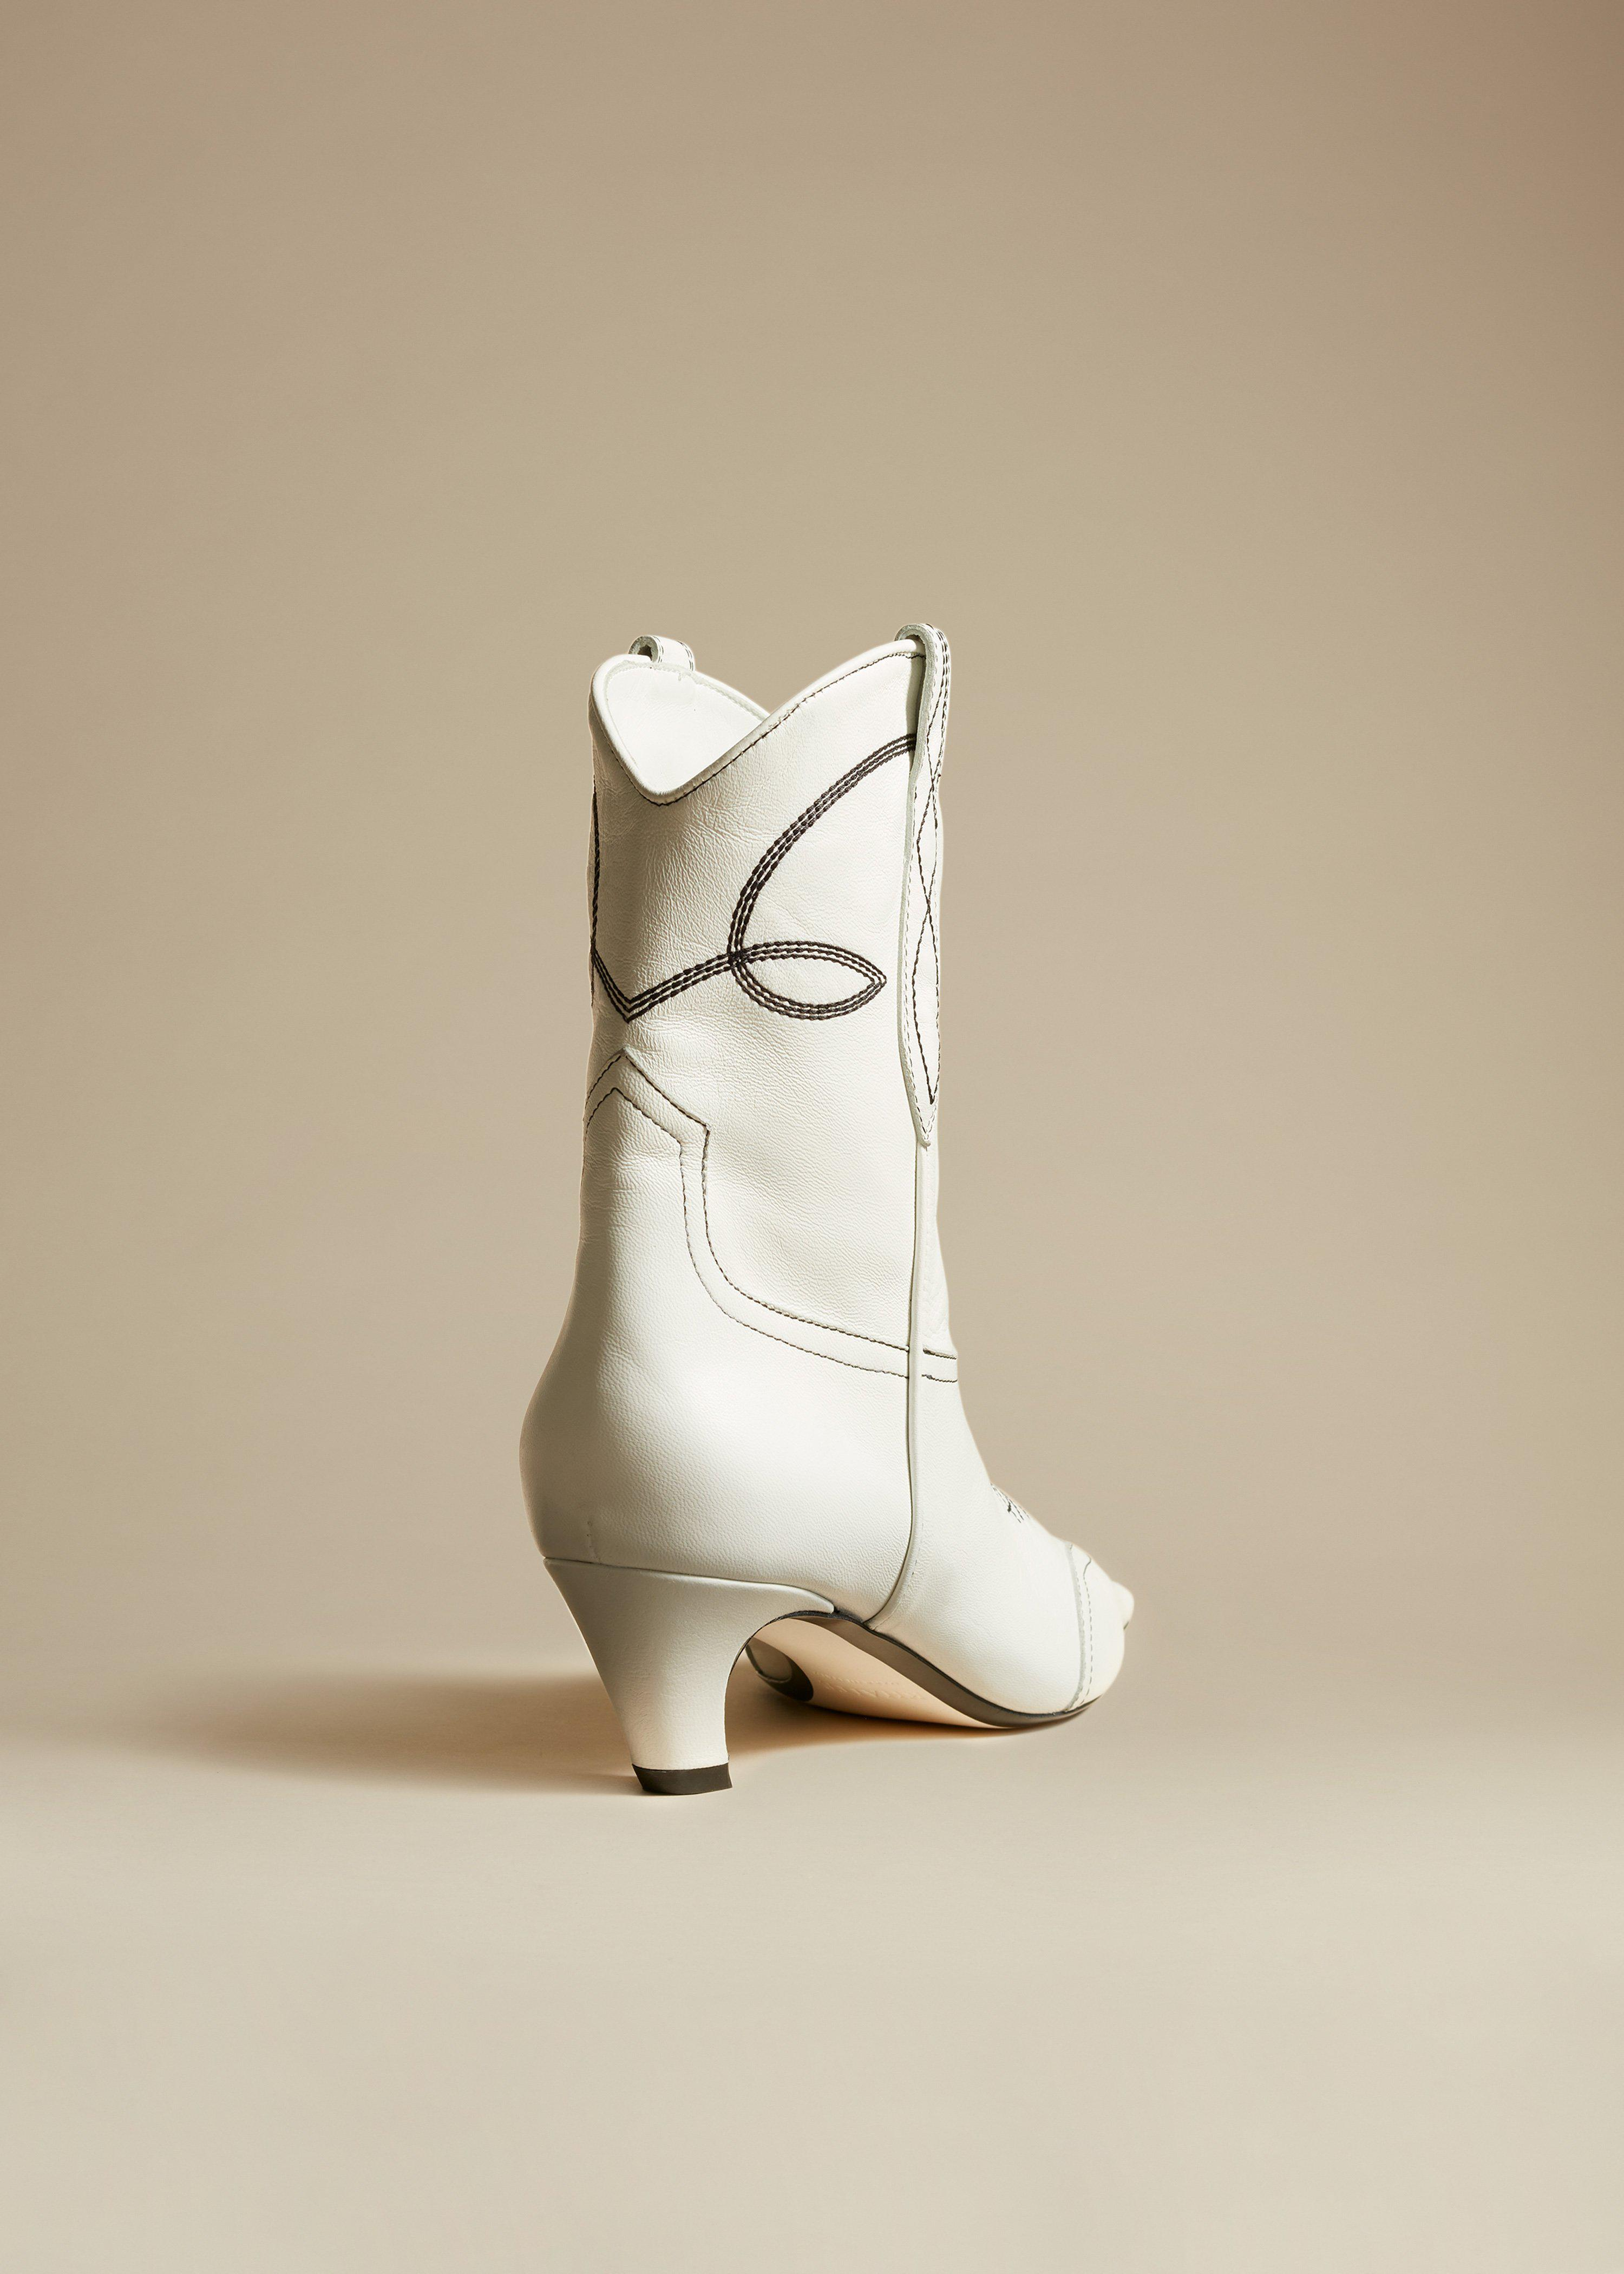 The Dallas Ankle Boot in White Leather 2